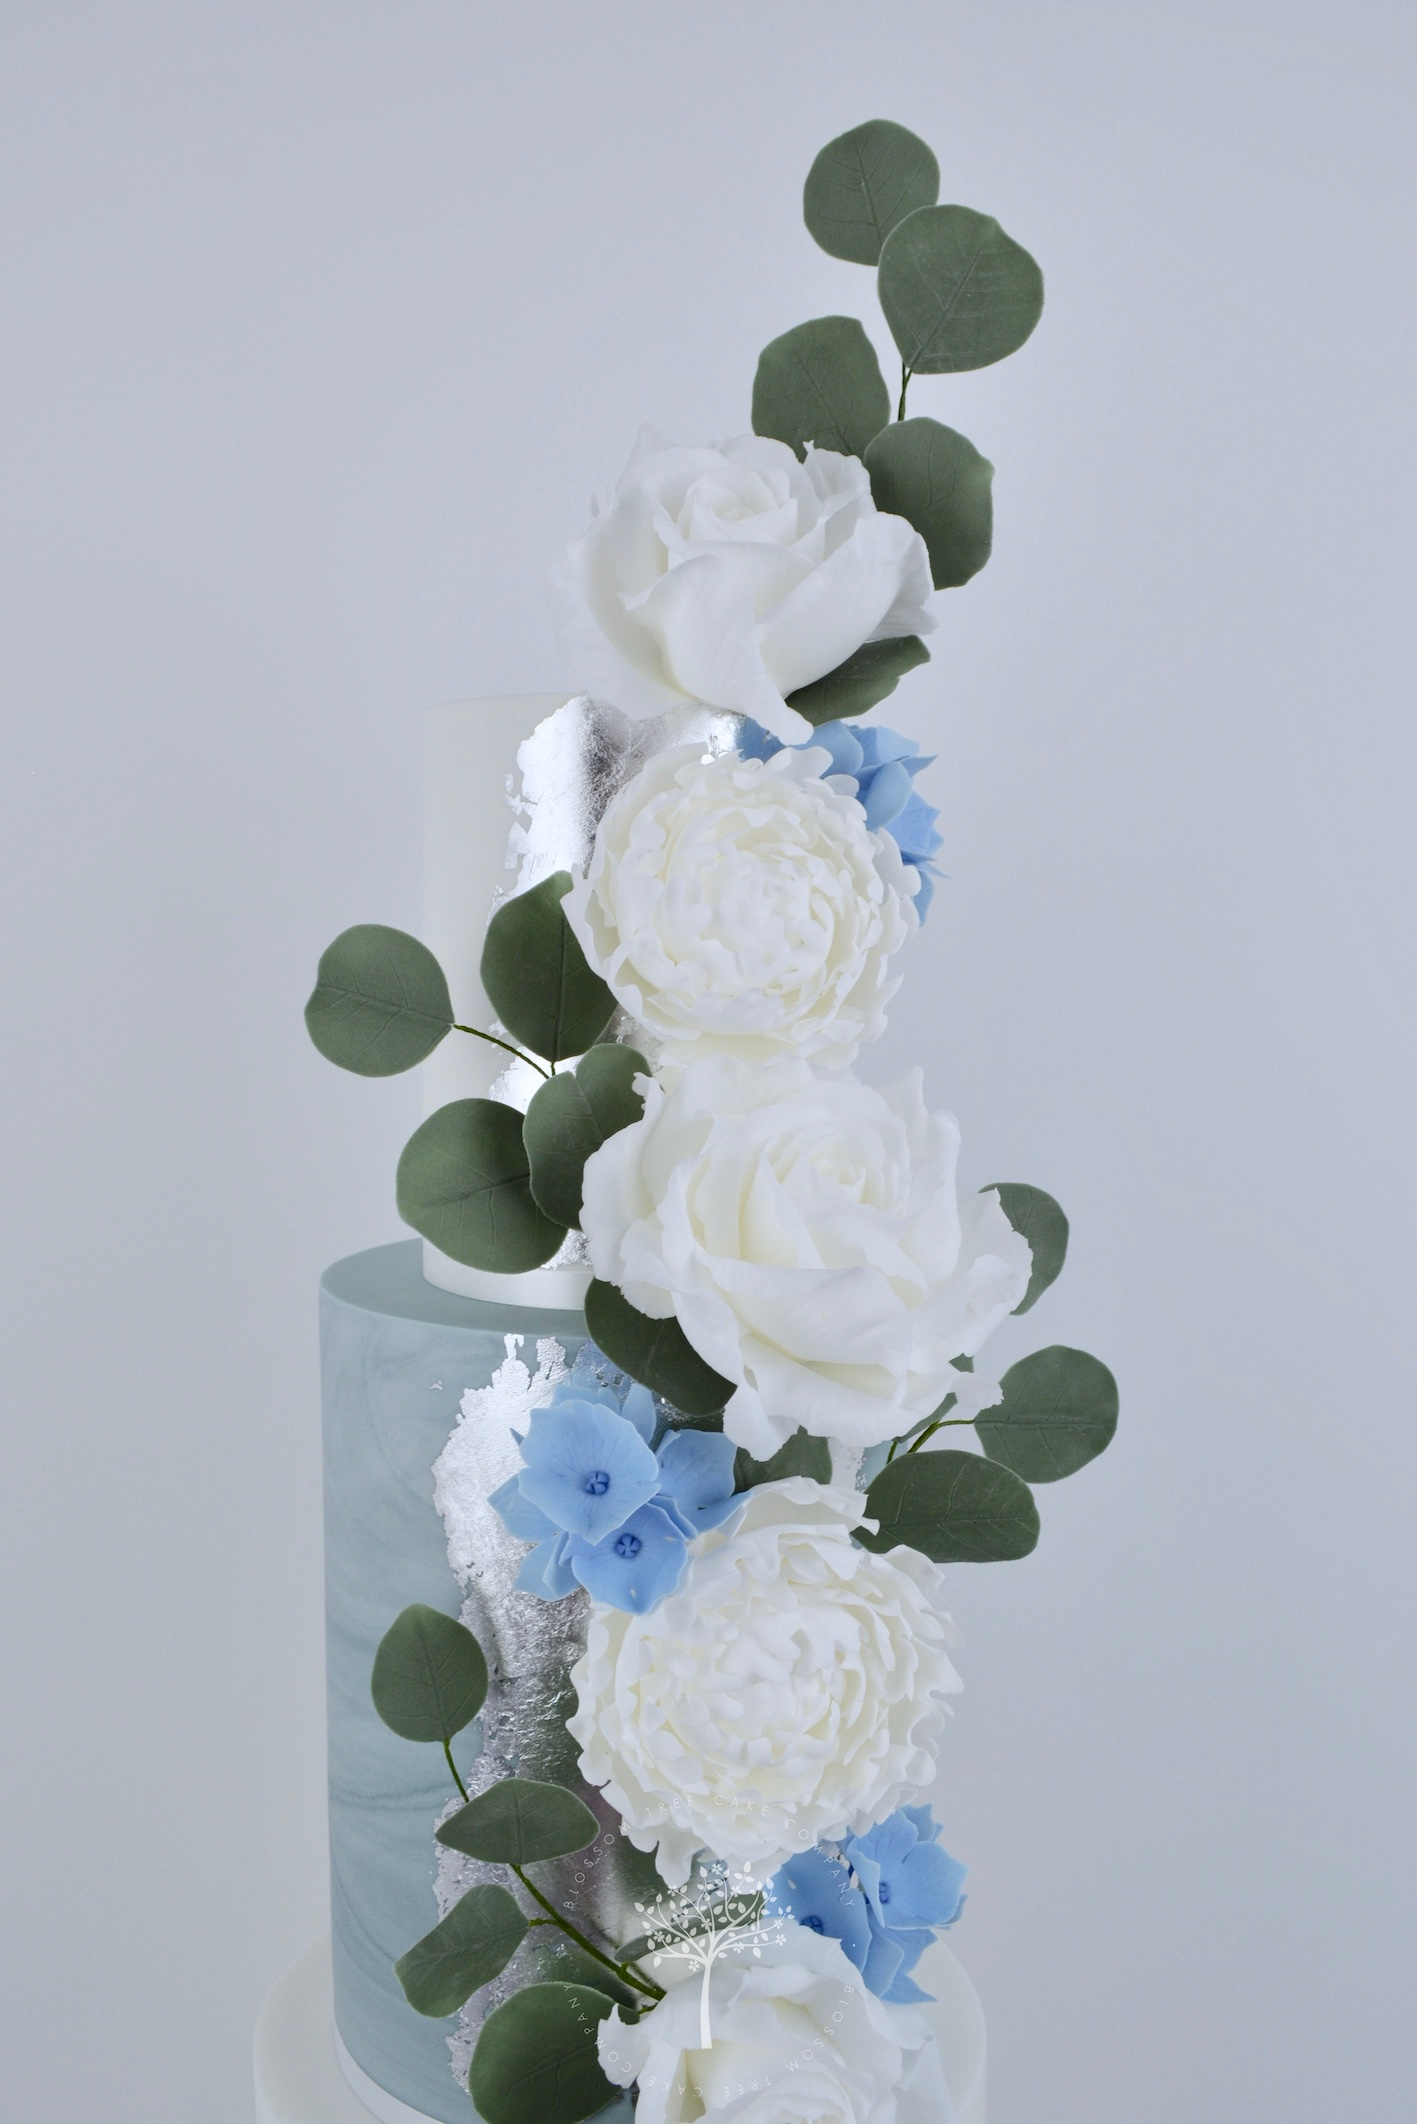 Peonies & Roses wedding cake by Blossom Tree Cake Company Harrogate North Yorkshire - top sugar flowers.jpg